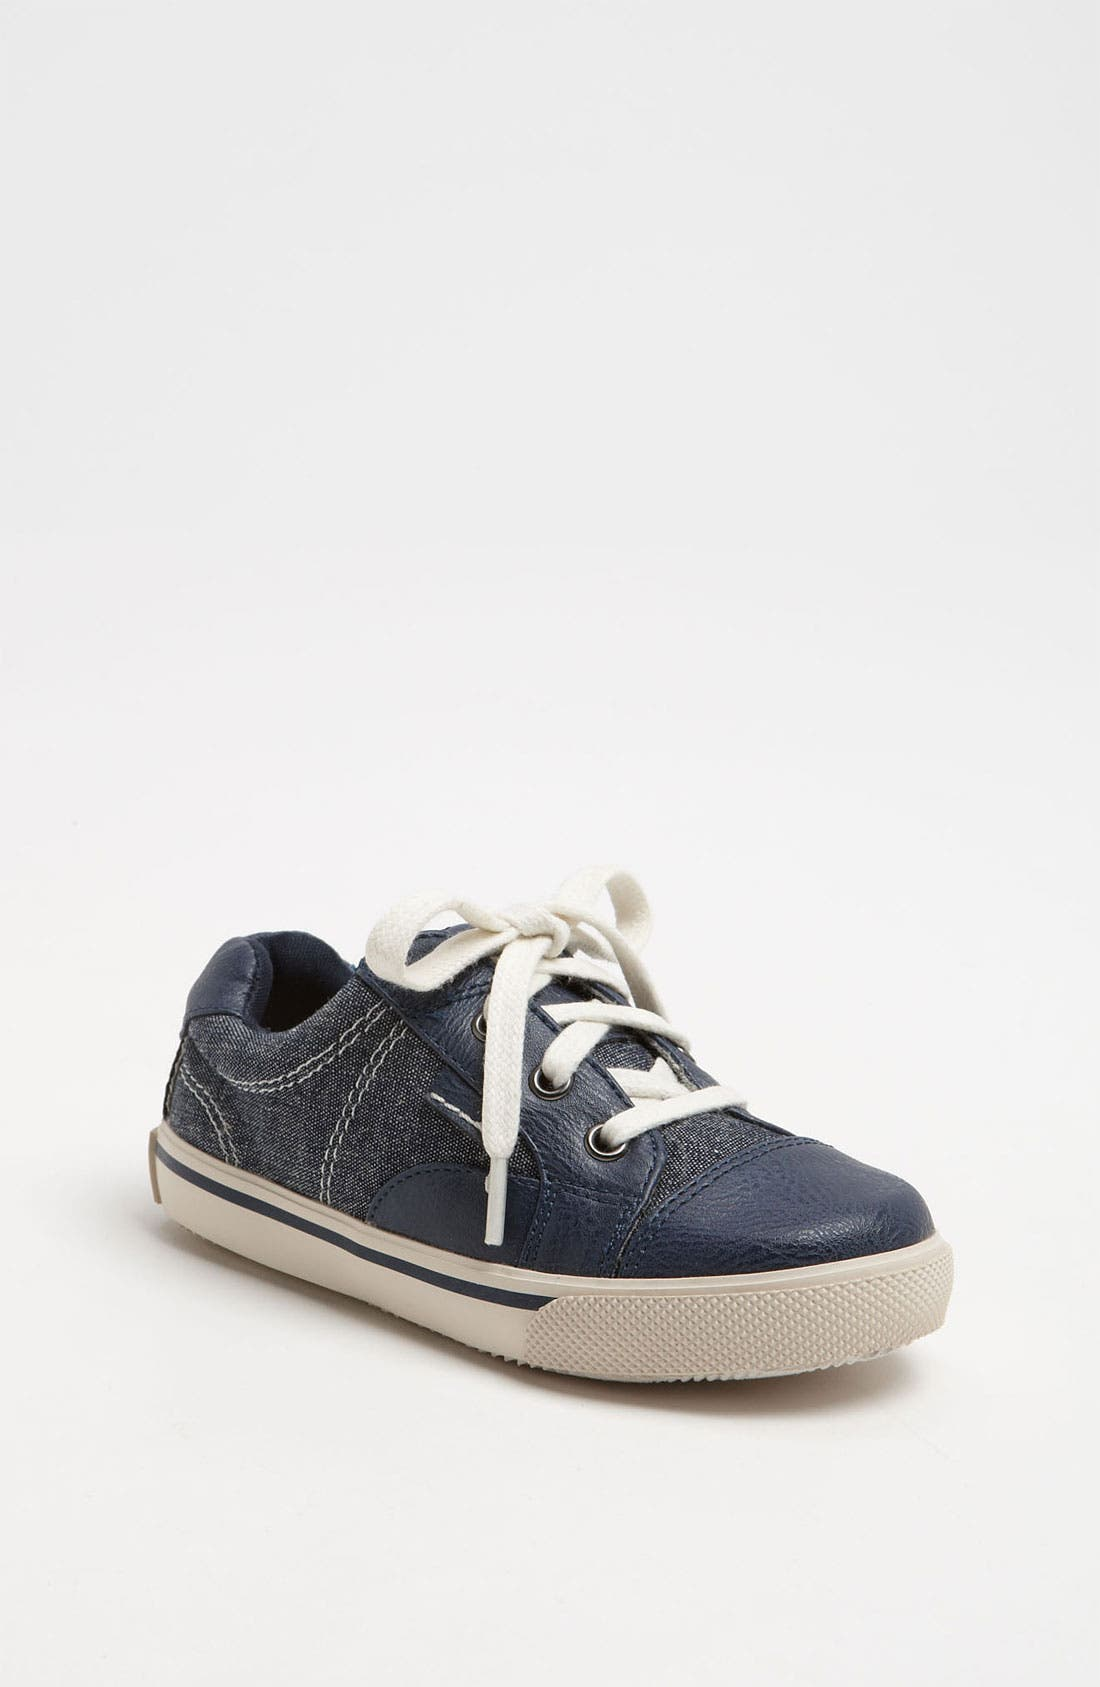 Main Image - Cole Haan 'Air Cory' Sneaker (Toddler)